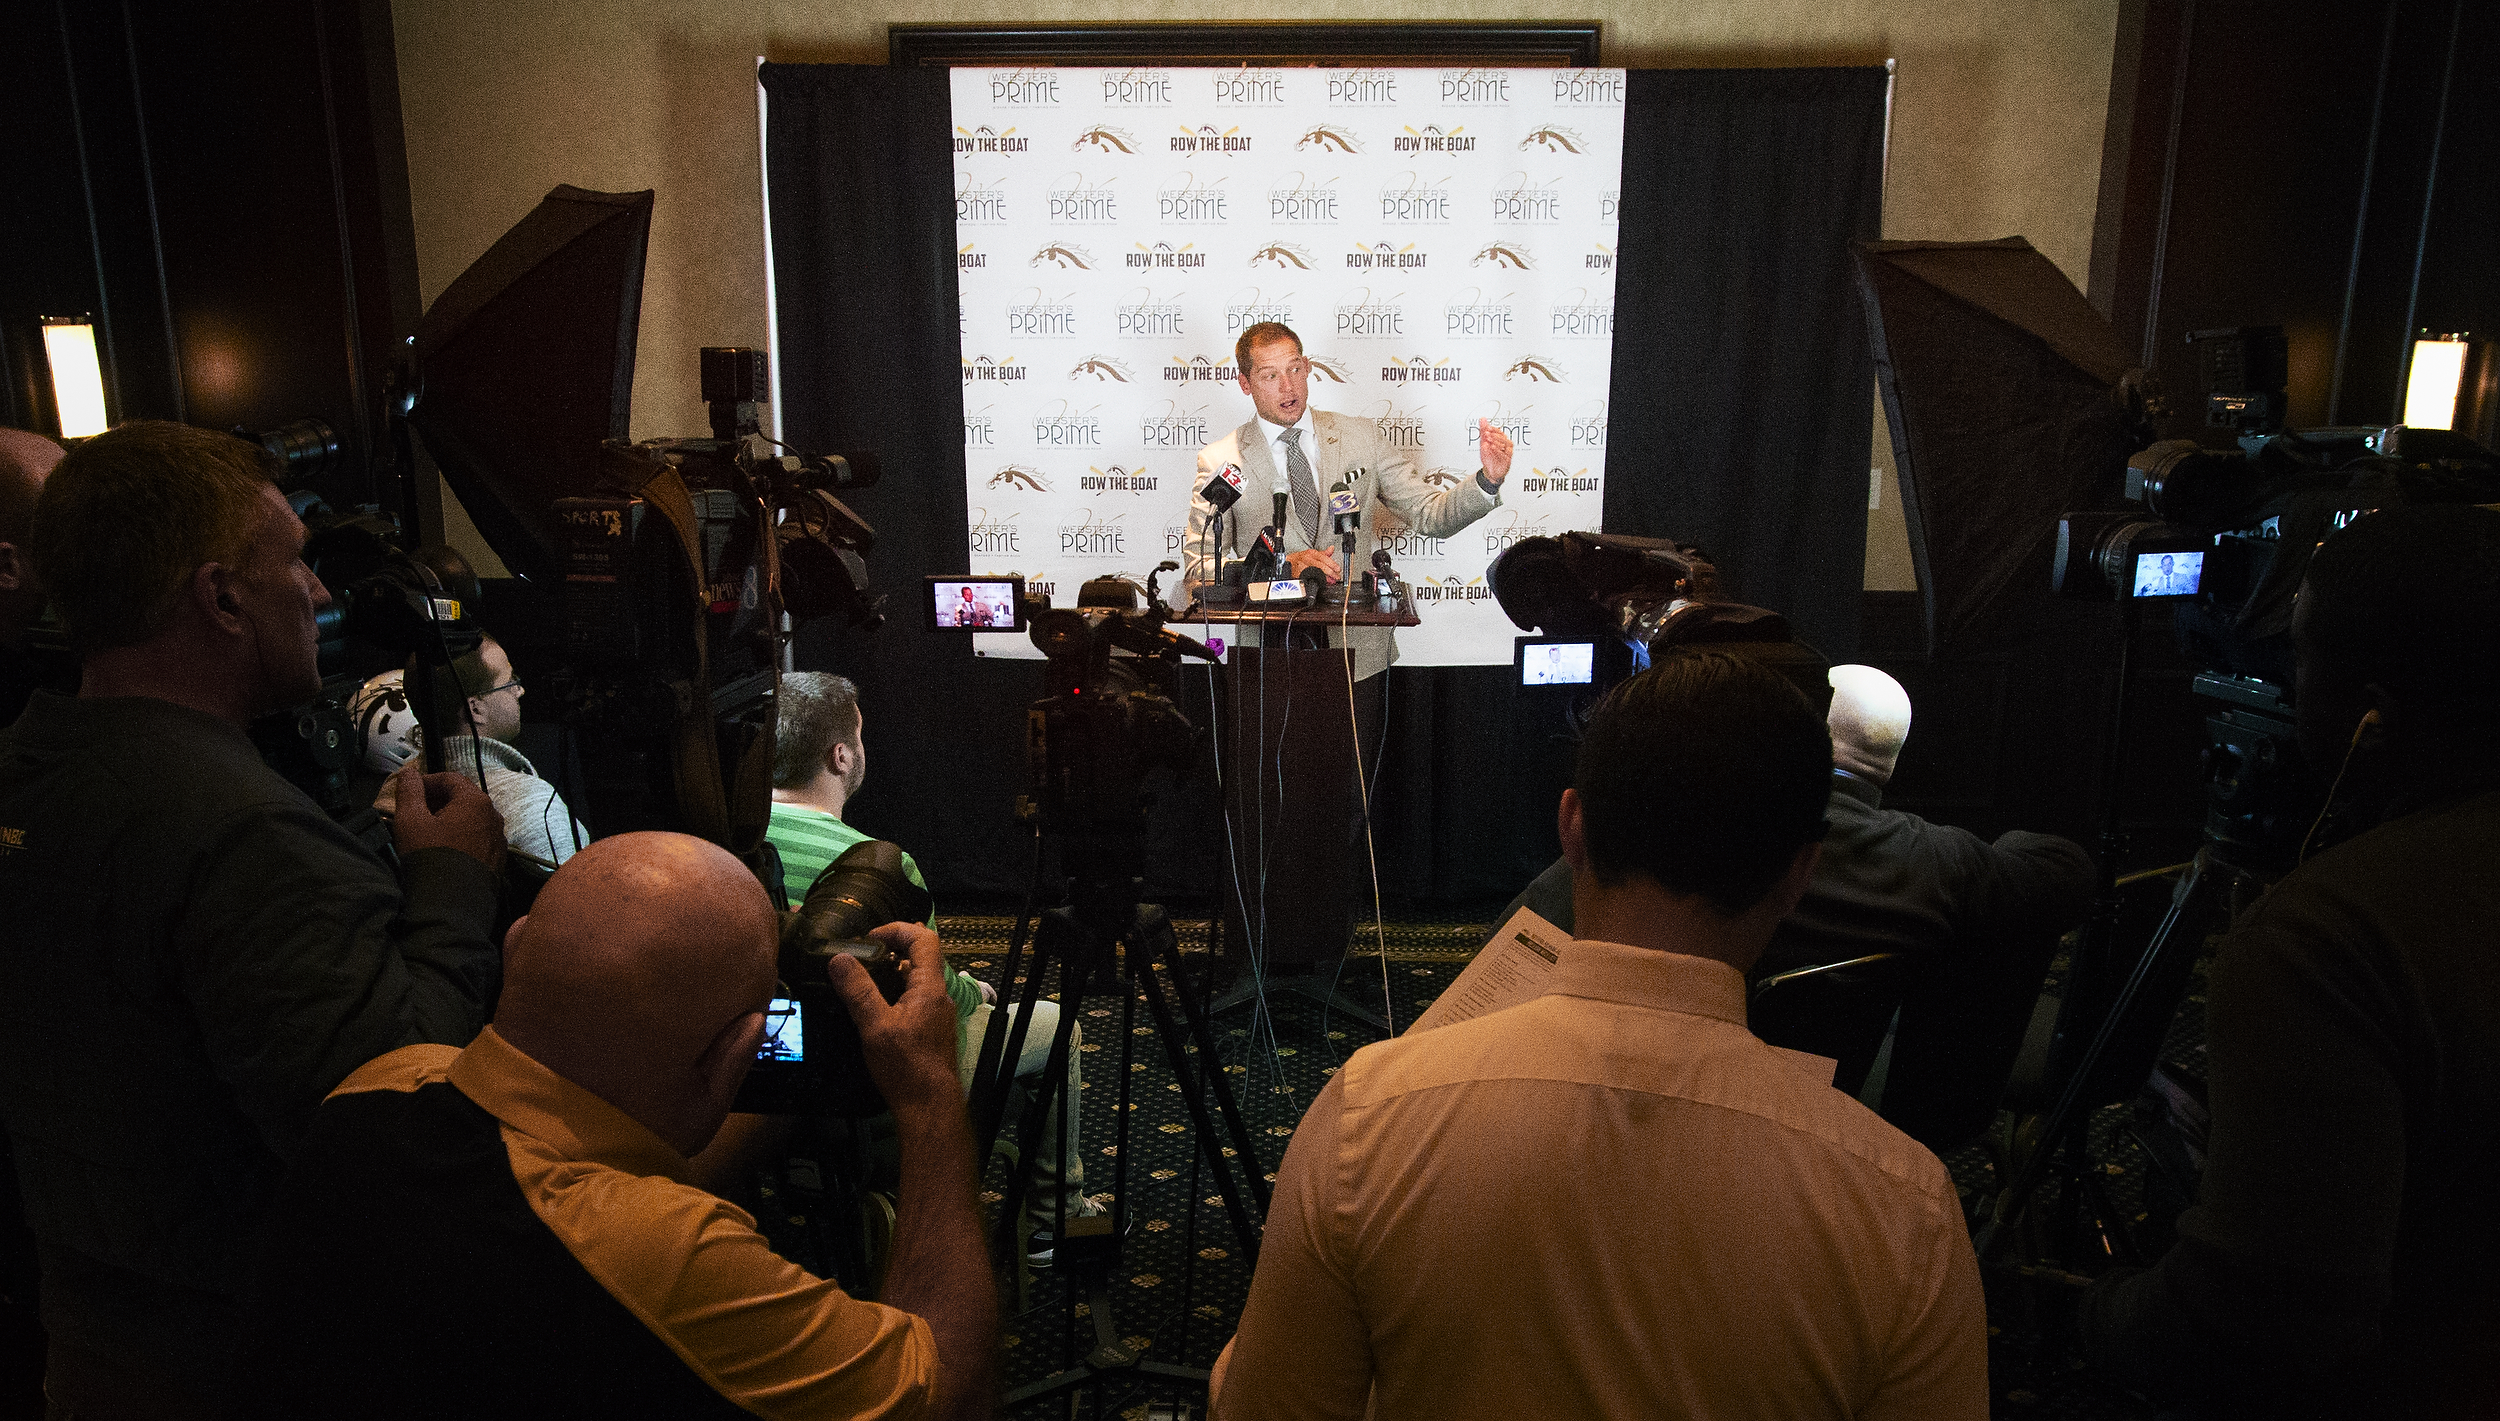 Head Coach P.J. Fleck speaks with media during a press conference at the Radisson Plaza Hotel in Kalamazoo, Mich. on Nov. 22, 2016.